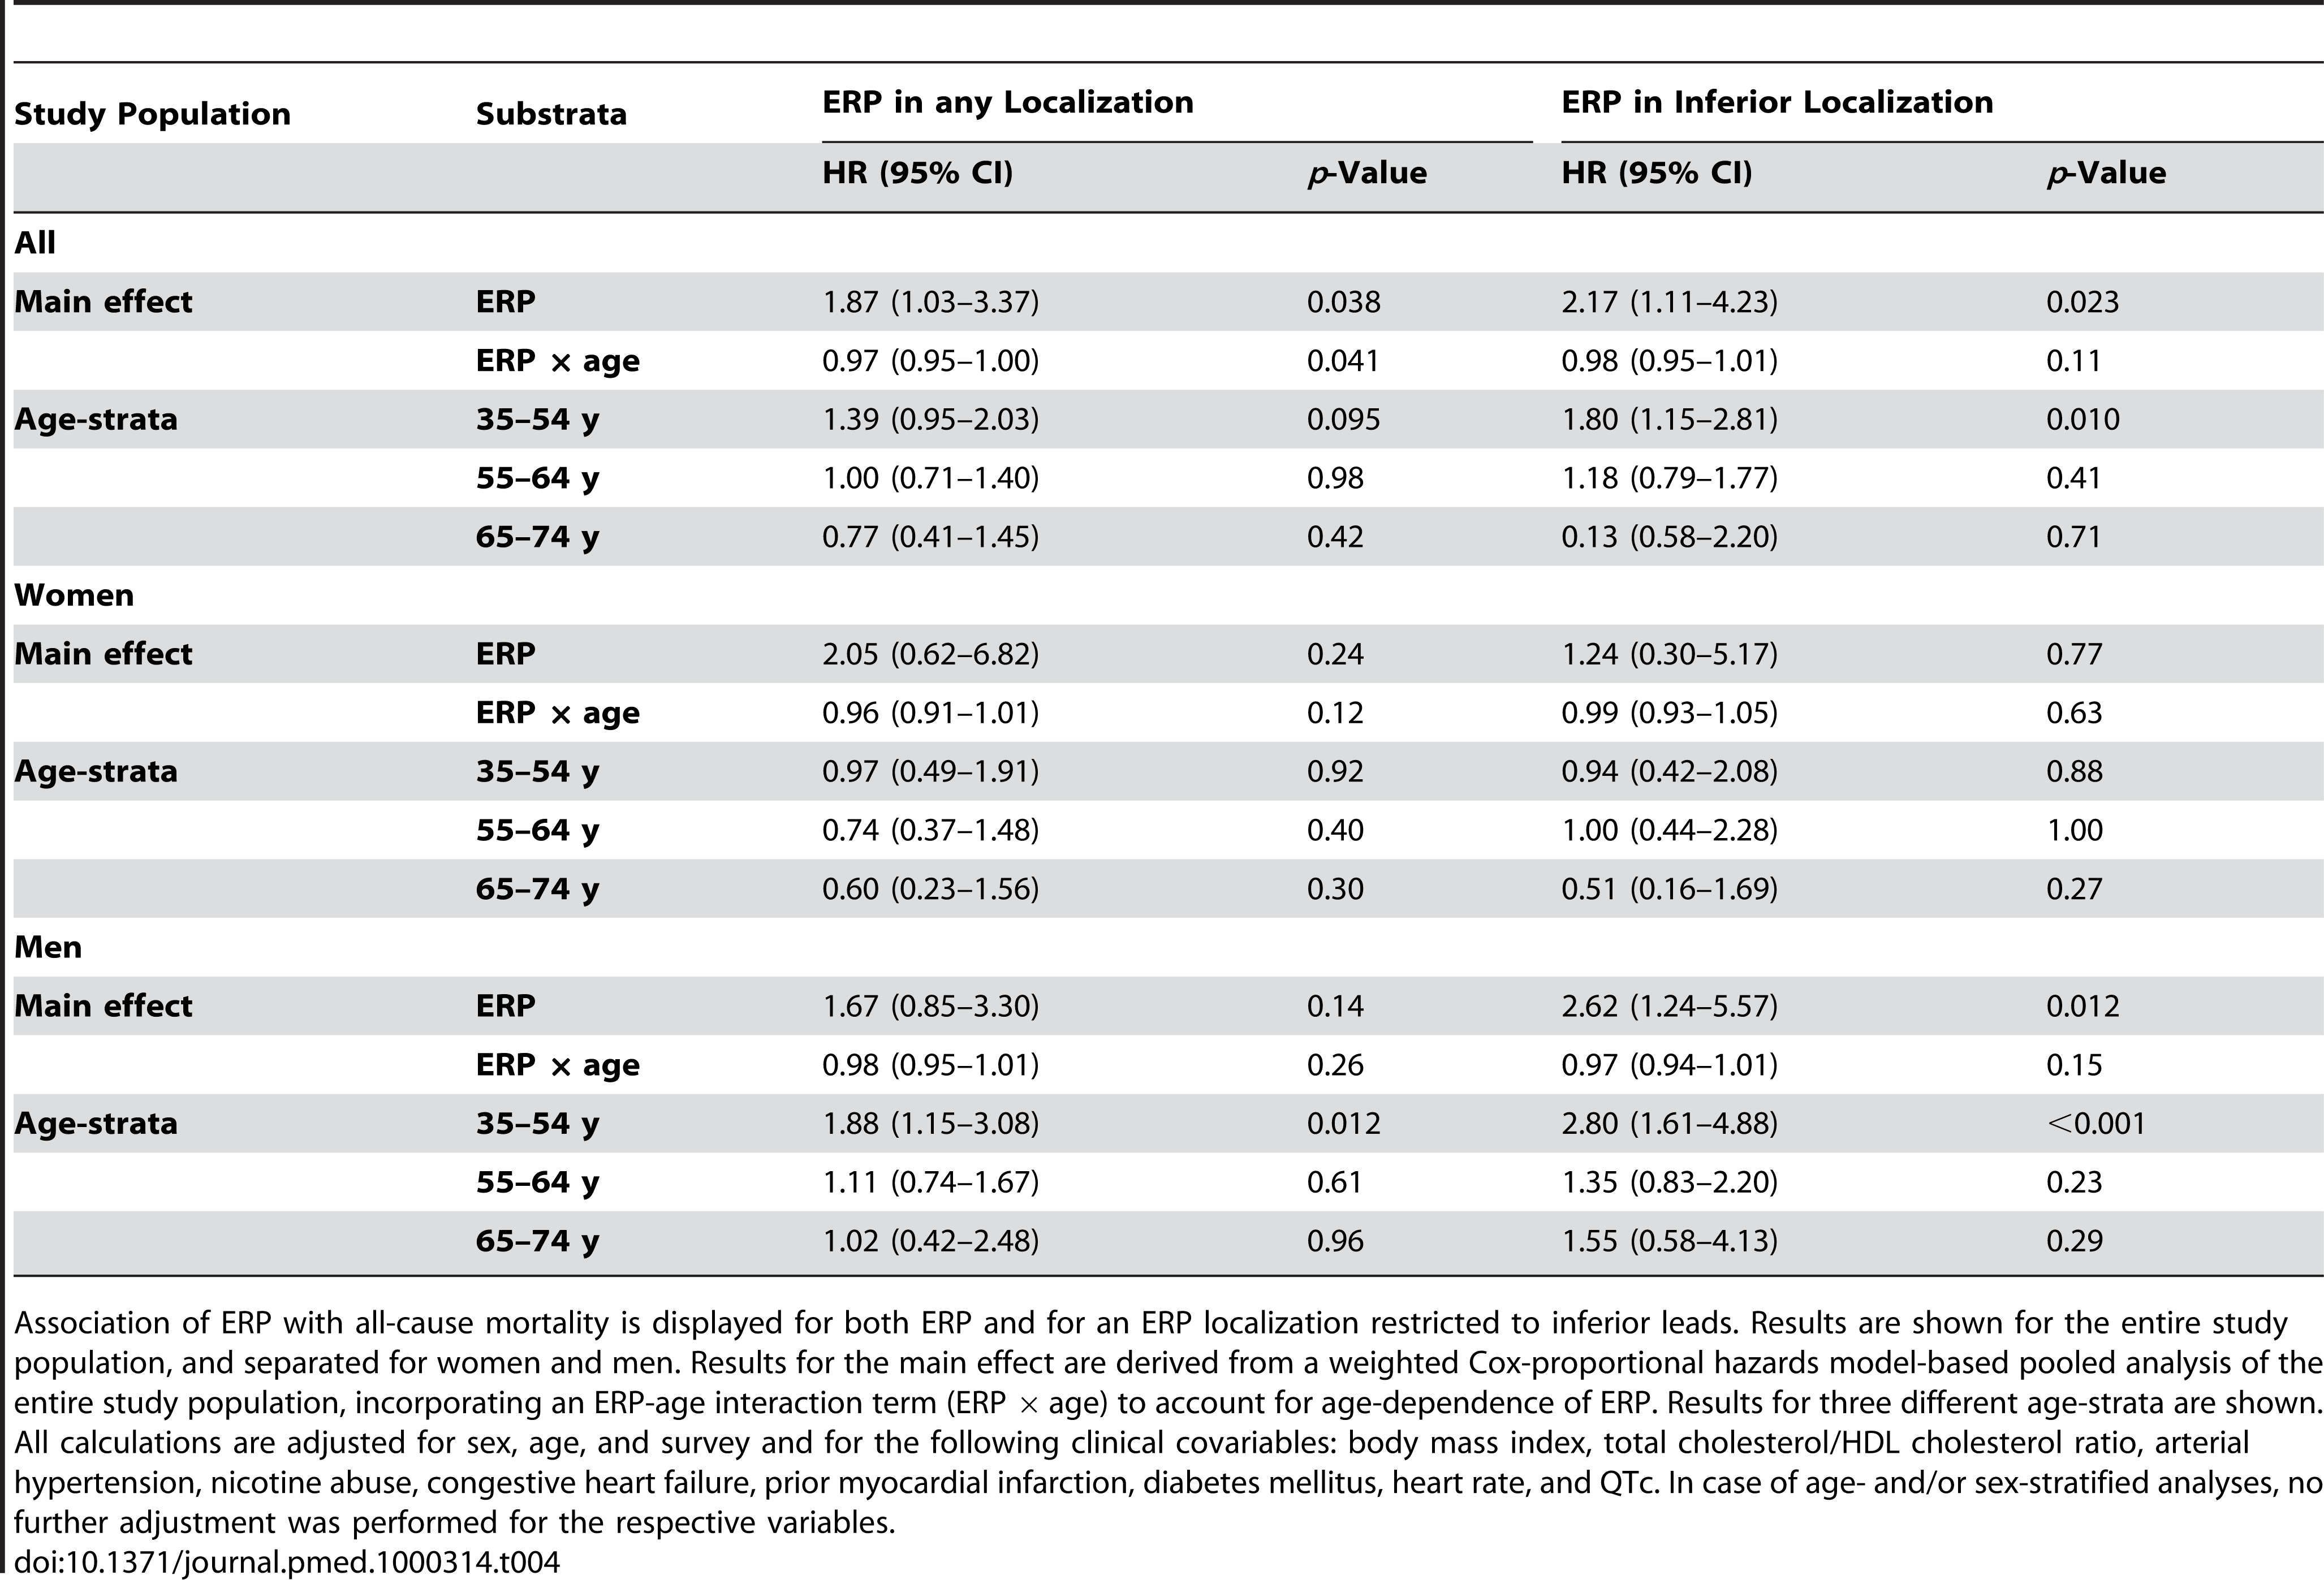 Association of ERP with all-cause mortality.